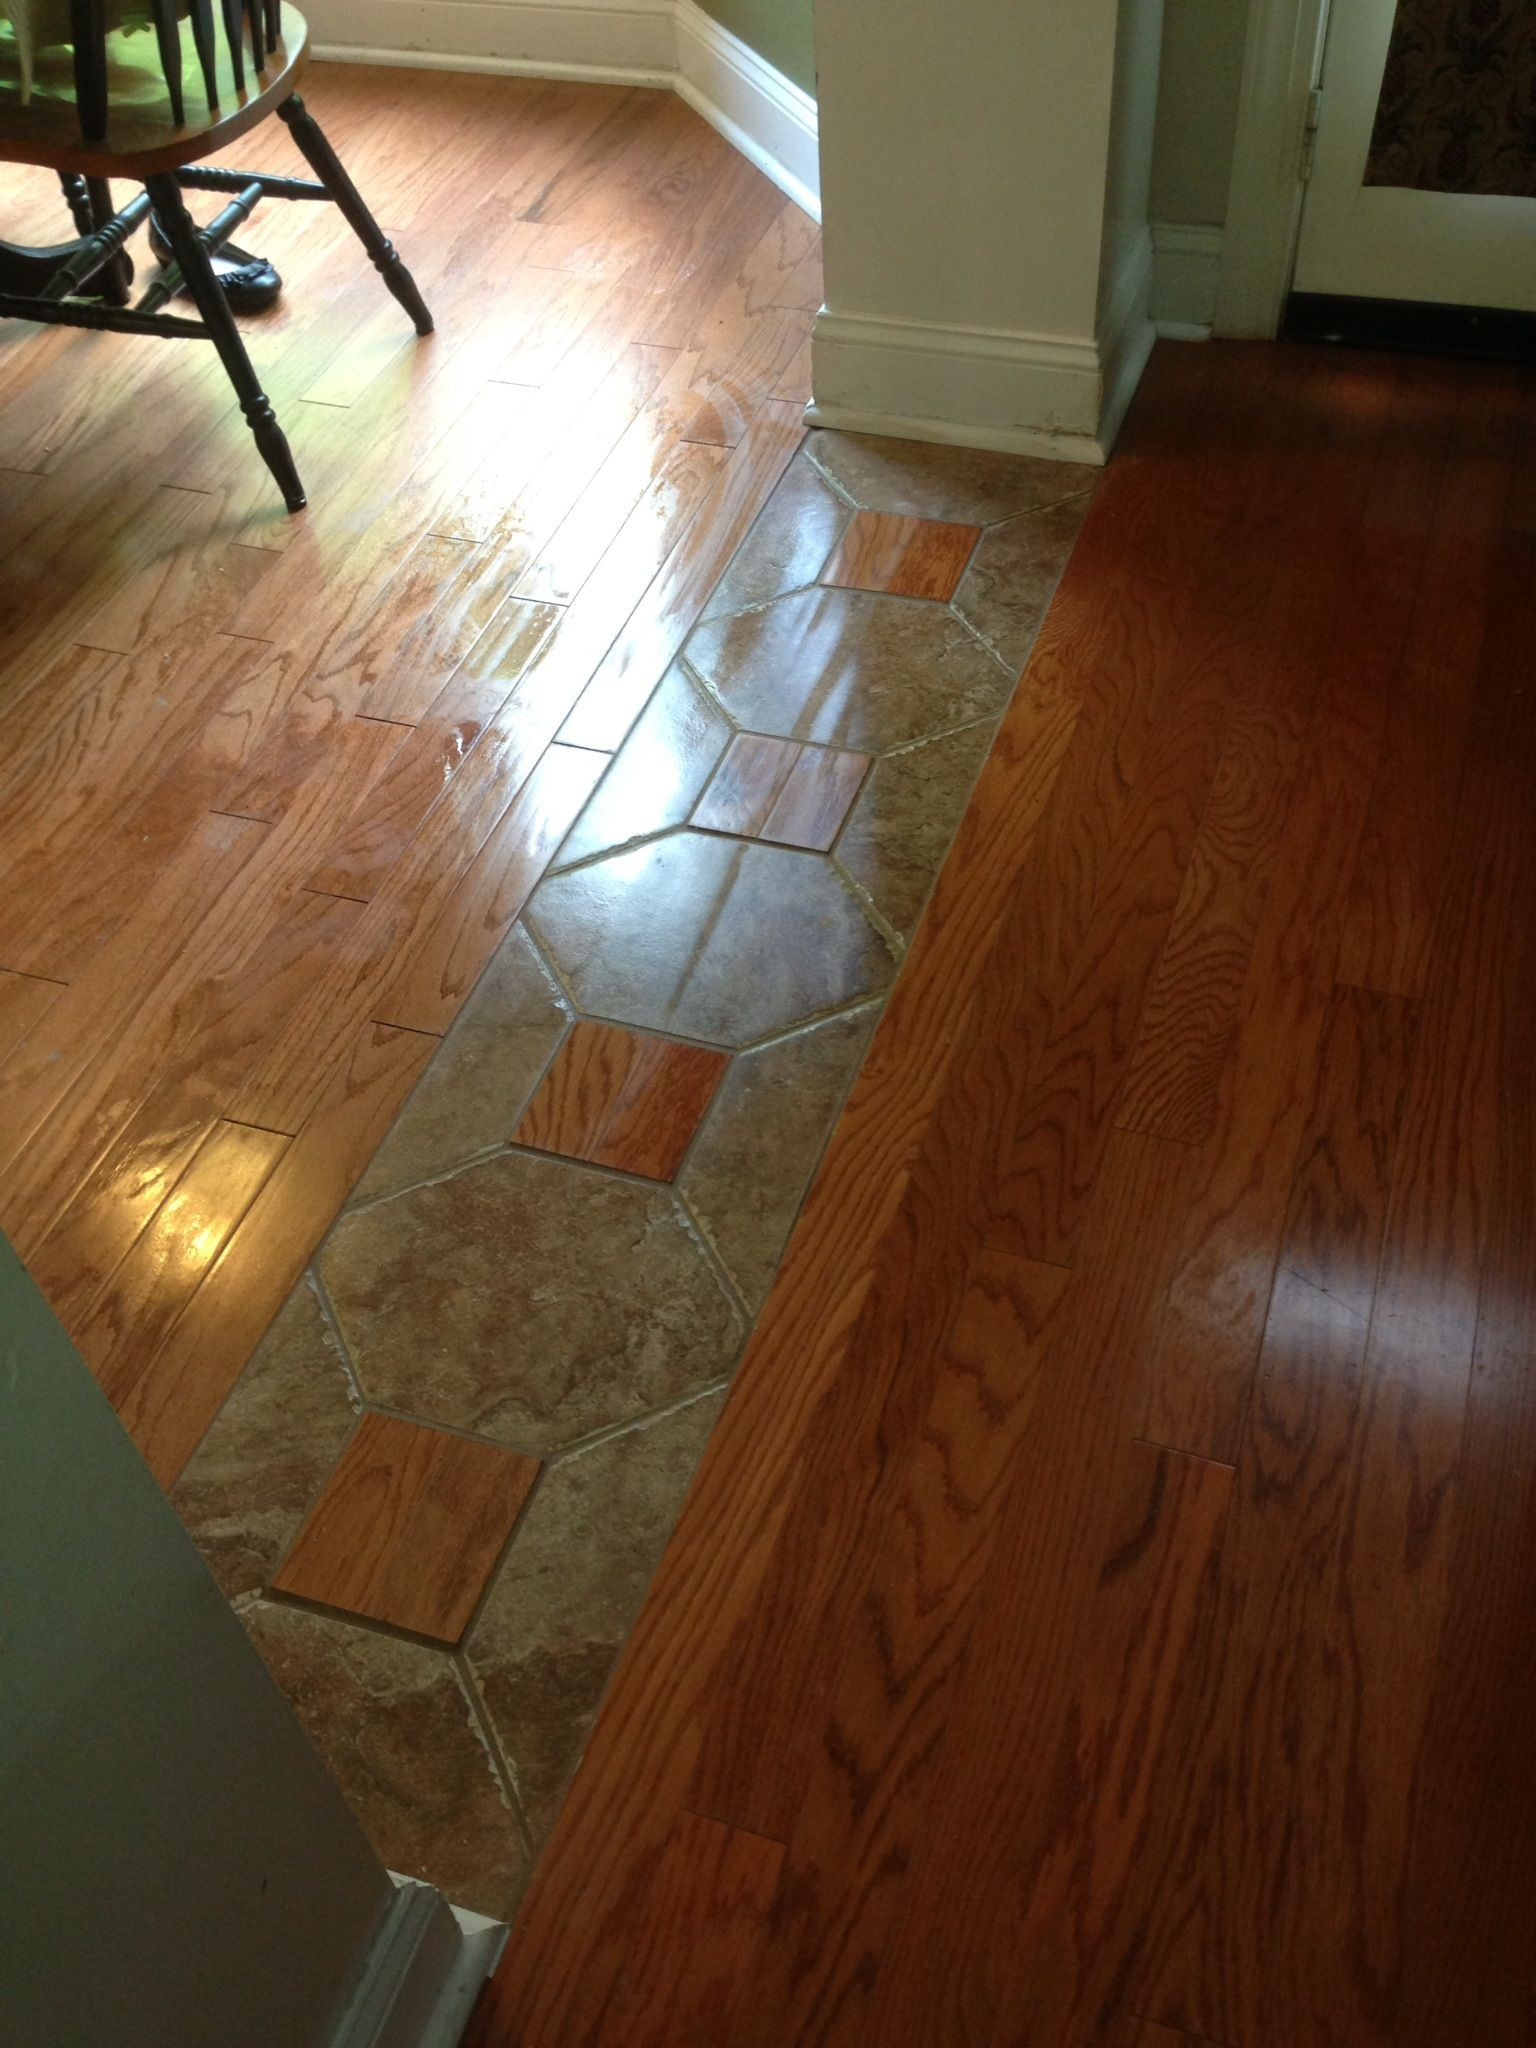 Unfinished Hardwood Floor Cleaner Of 13 Awesome How to Patch Hardwood Floor Collection Dizpos Com within How to Patch Hardwood Floor Fresh A Really Cool Way to Tie Two Different Hardwood Lots